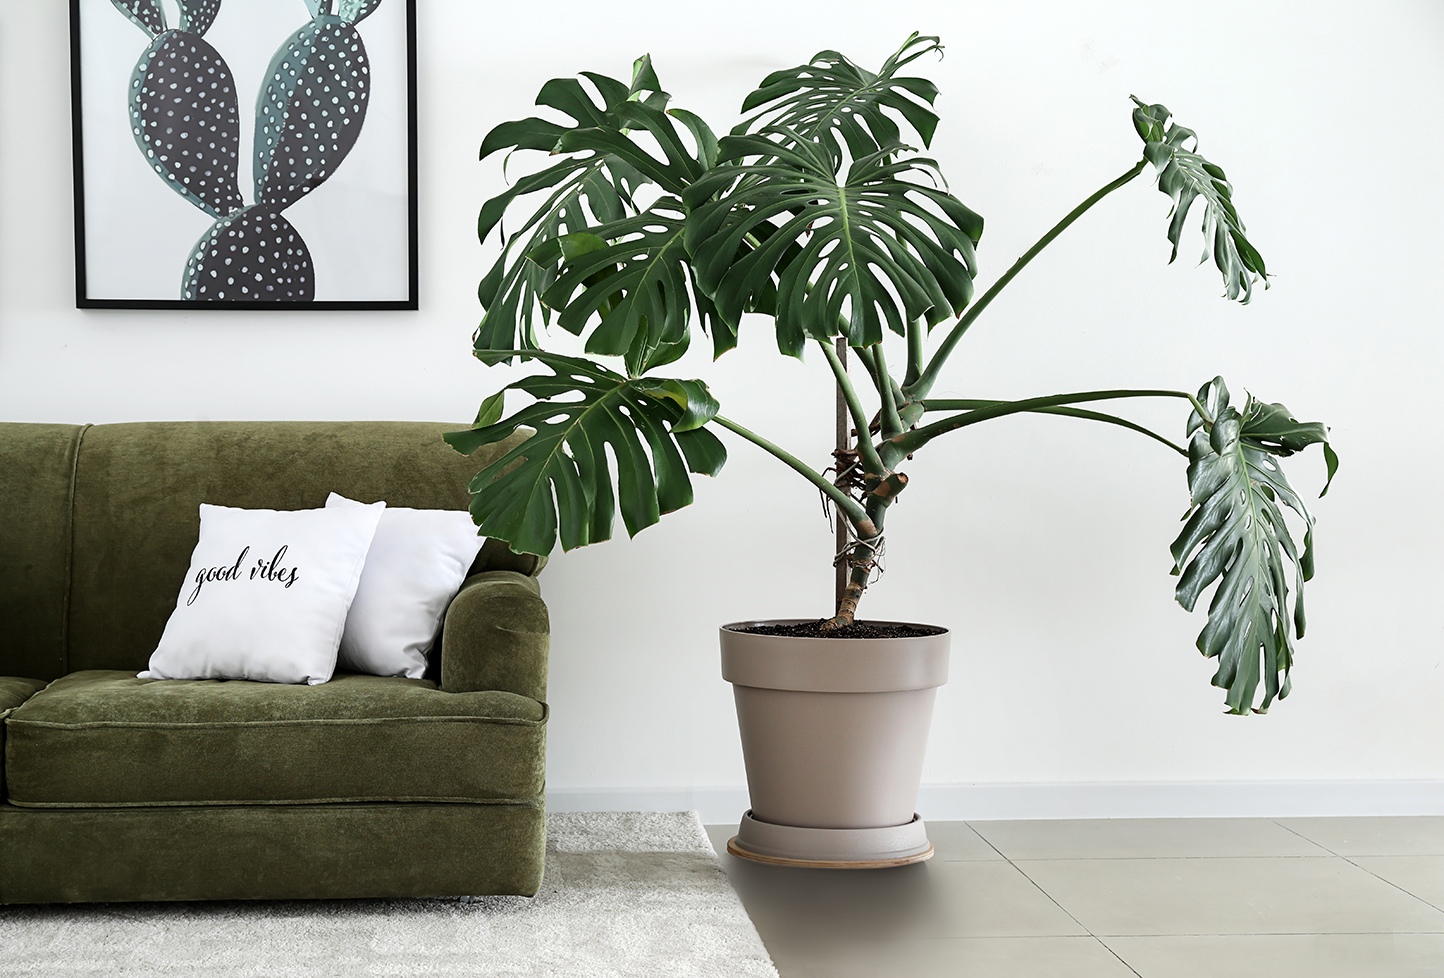 Monstera and Split-Leaf Philodendron: Is There a Difference Between the Two?